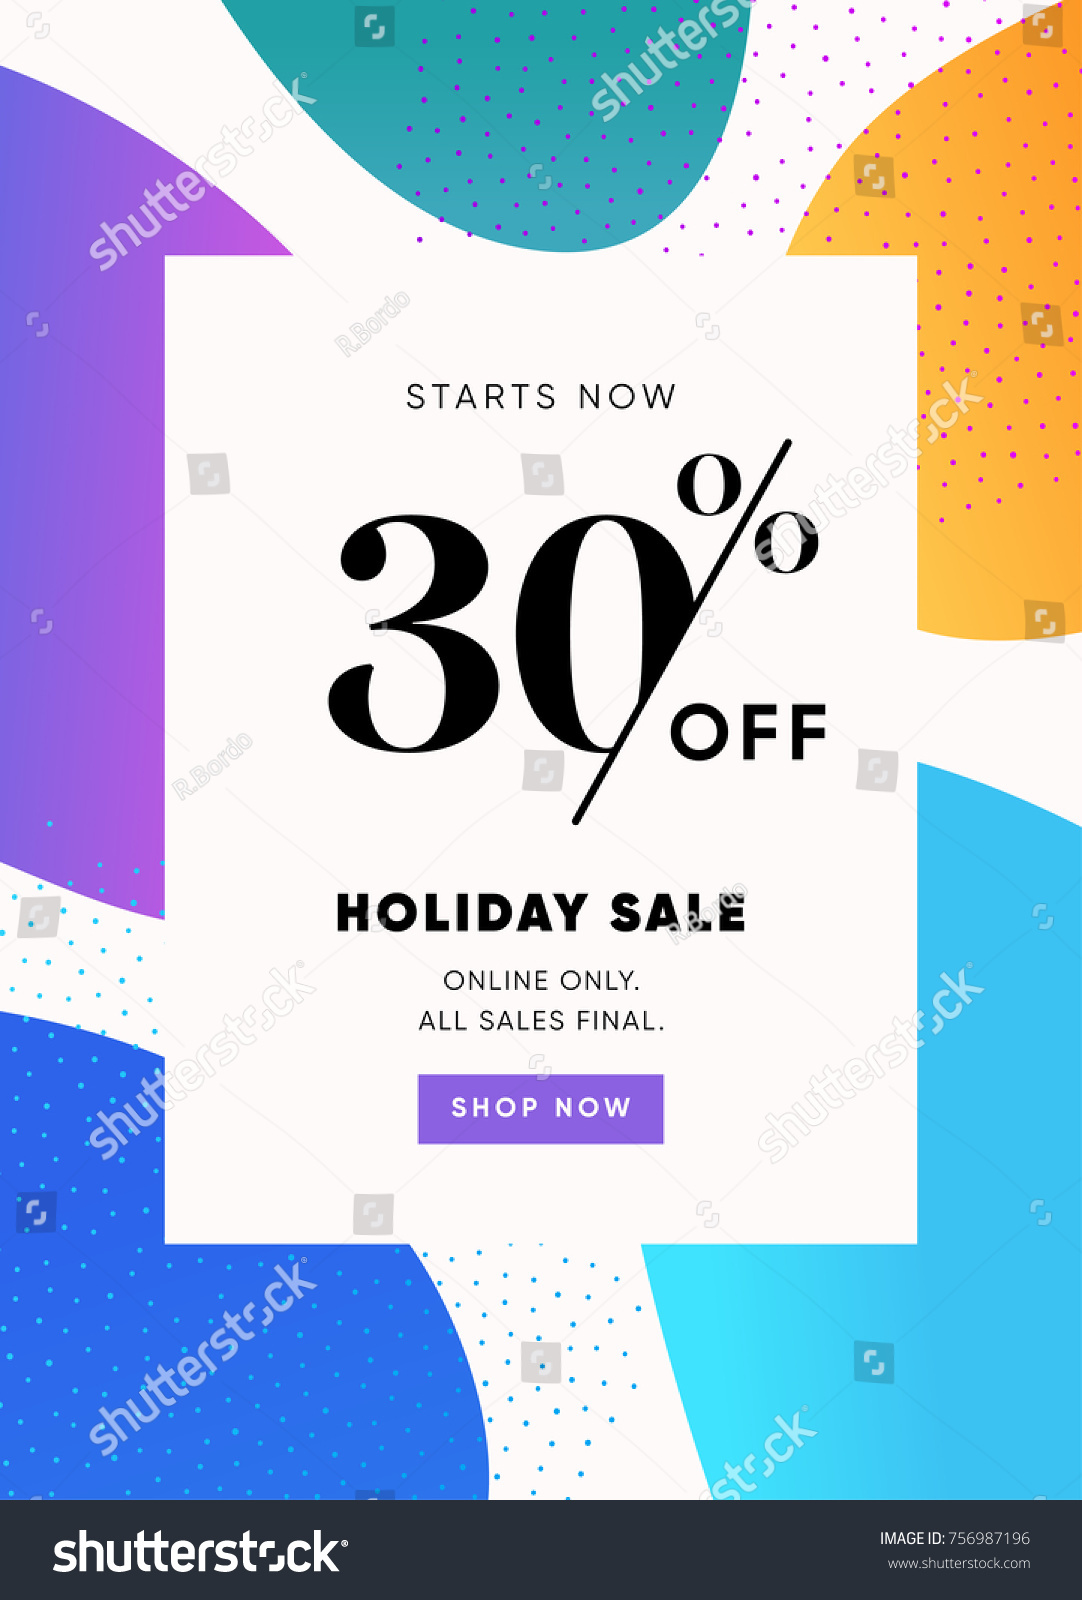 Holiday Sale Banner 30 OFF Special Offer Ad Discount Promotion Vector